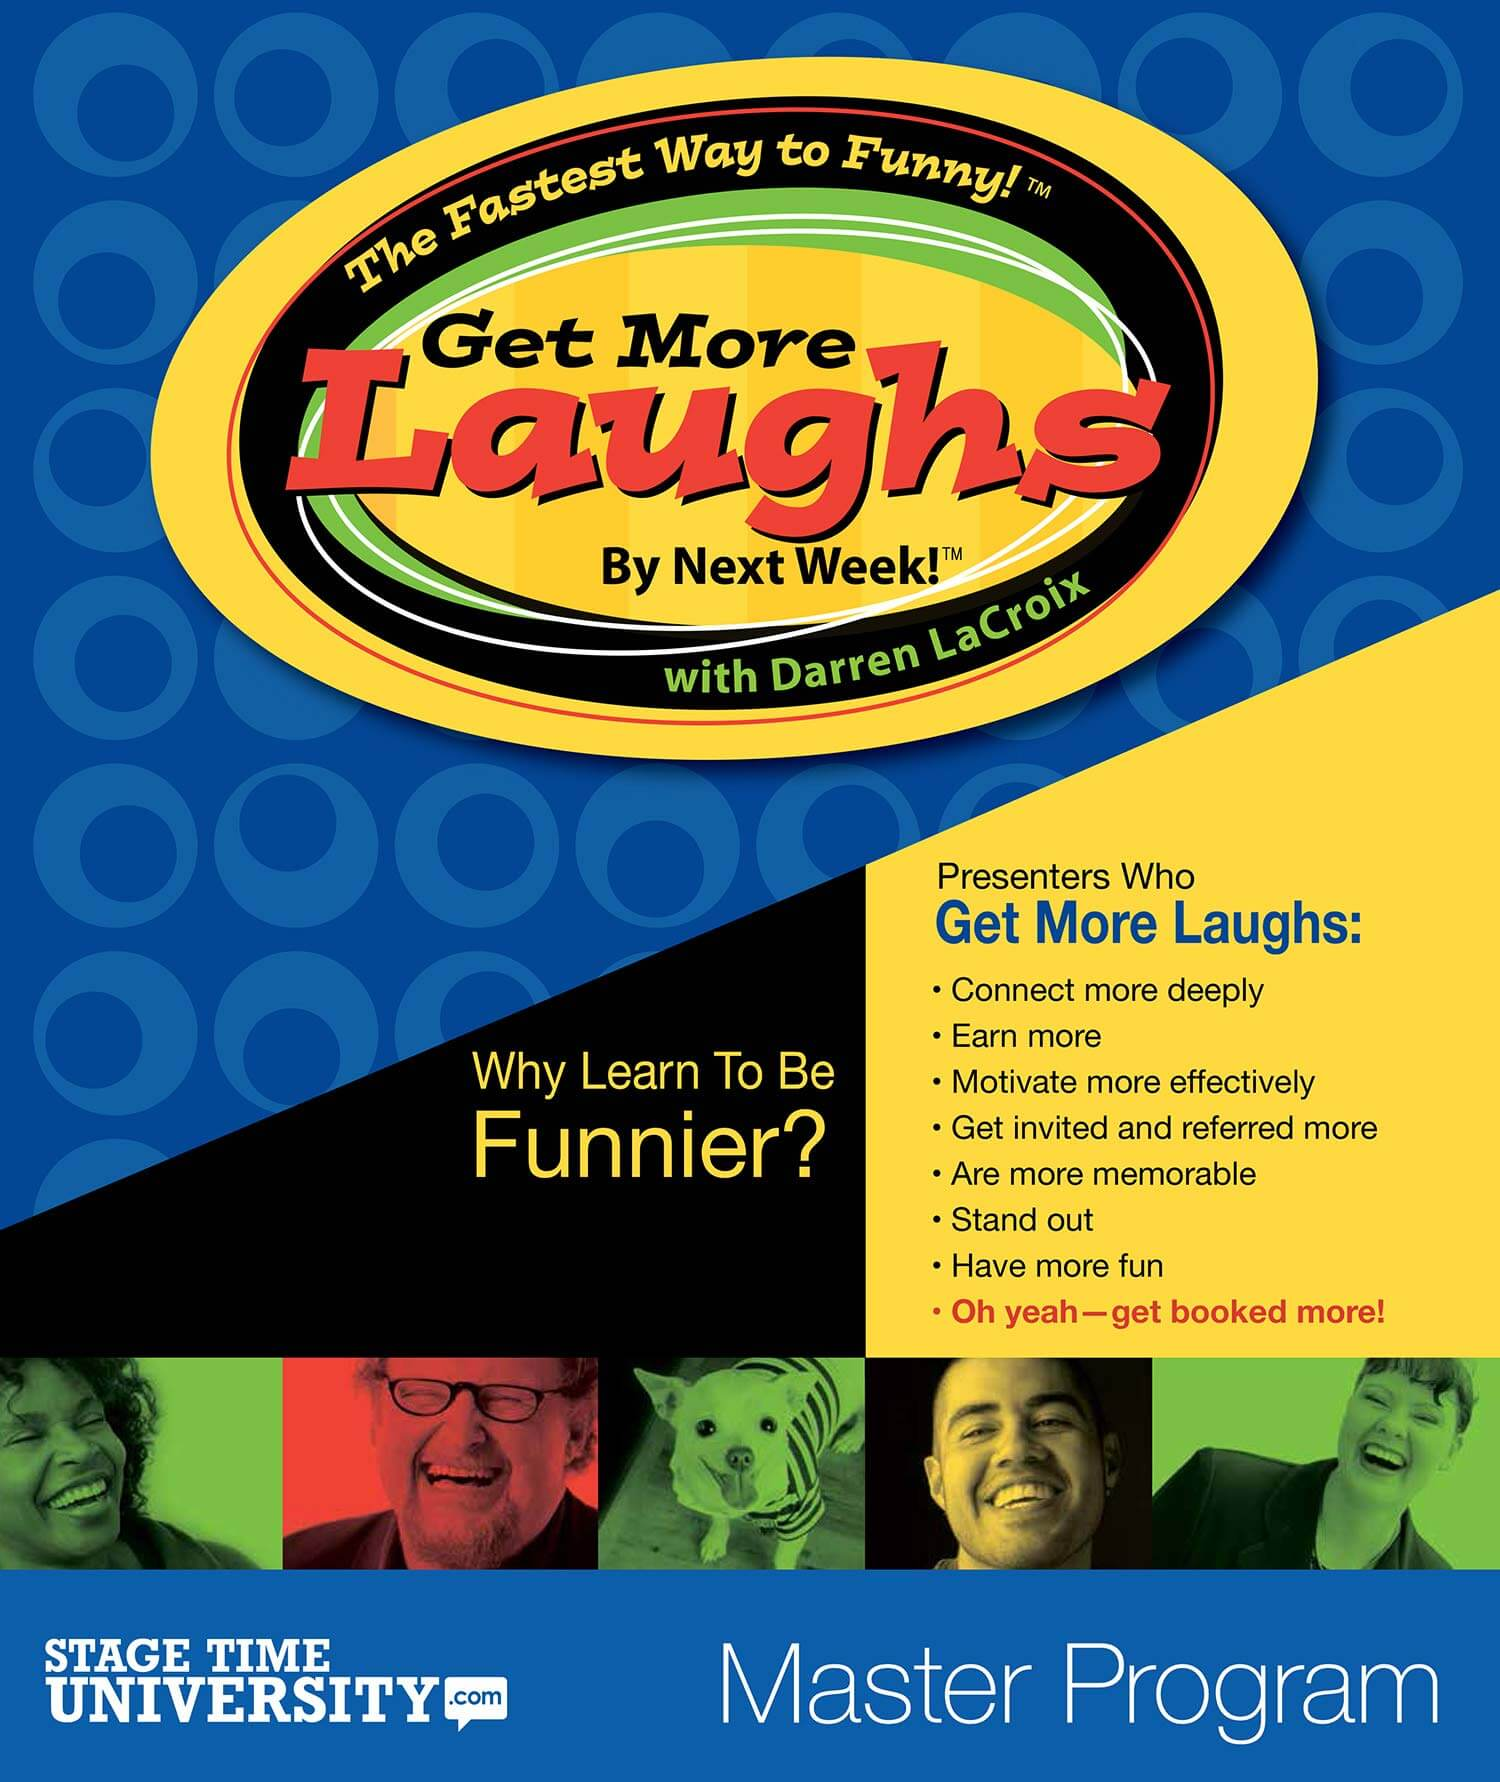 Get More Laughs By Next Week